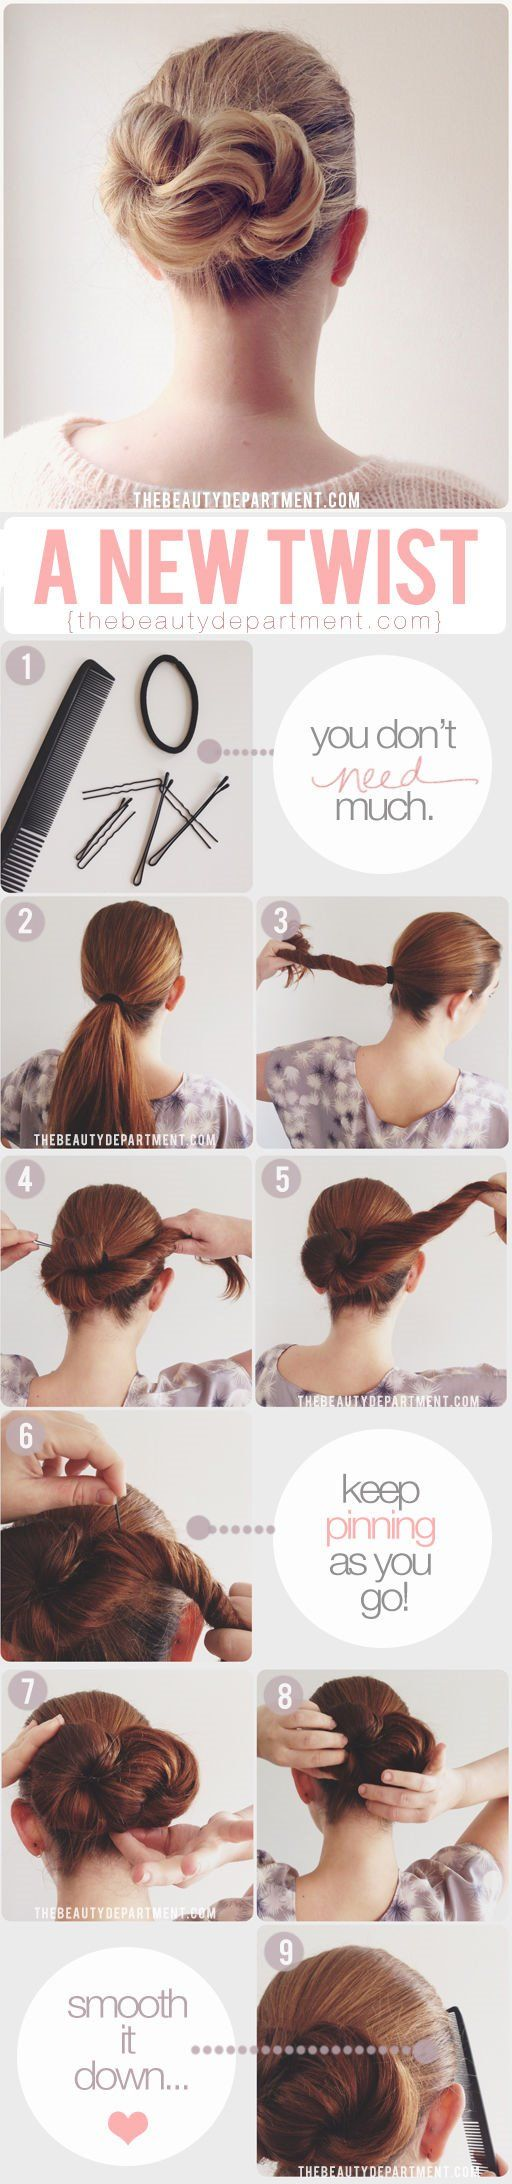 This is perfect! My hair is too long for a messy bun, or just refuses to stay up, and it is so difficult to wrap it around and around in an attempt for a ballerina bun. Now I do not have to:)